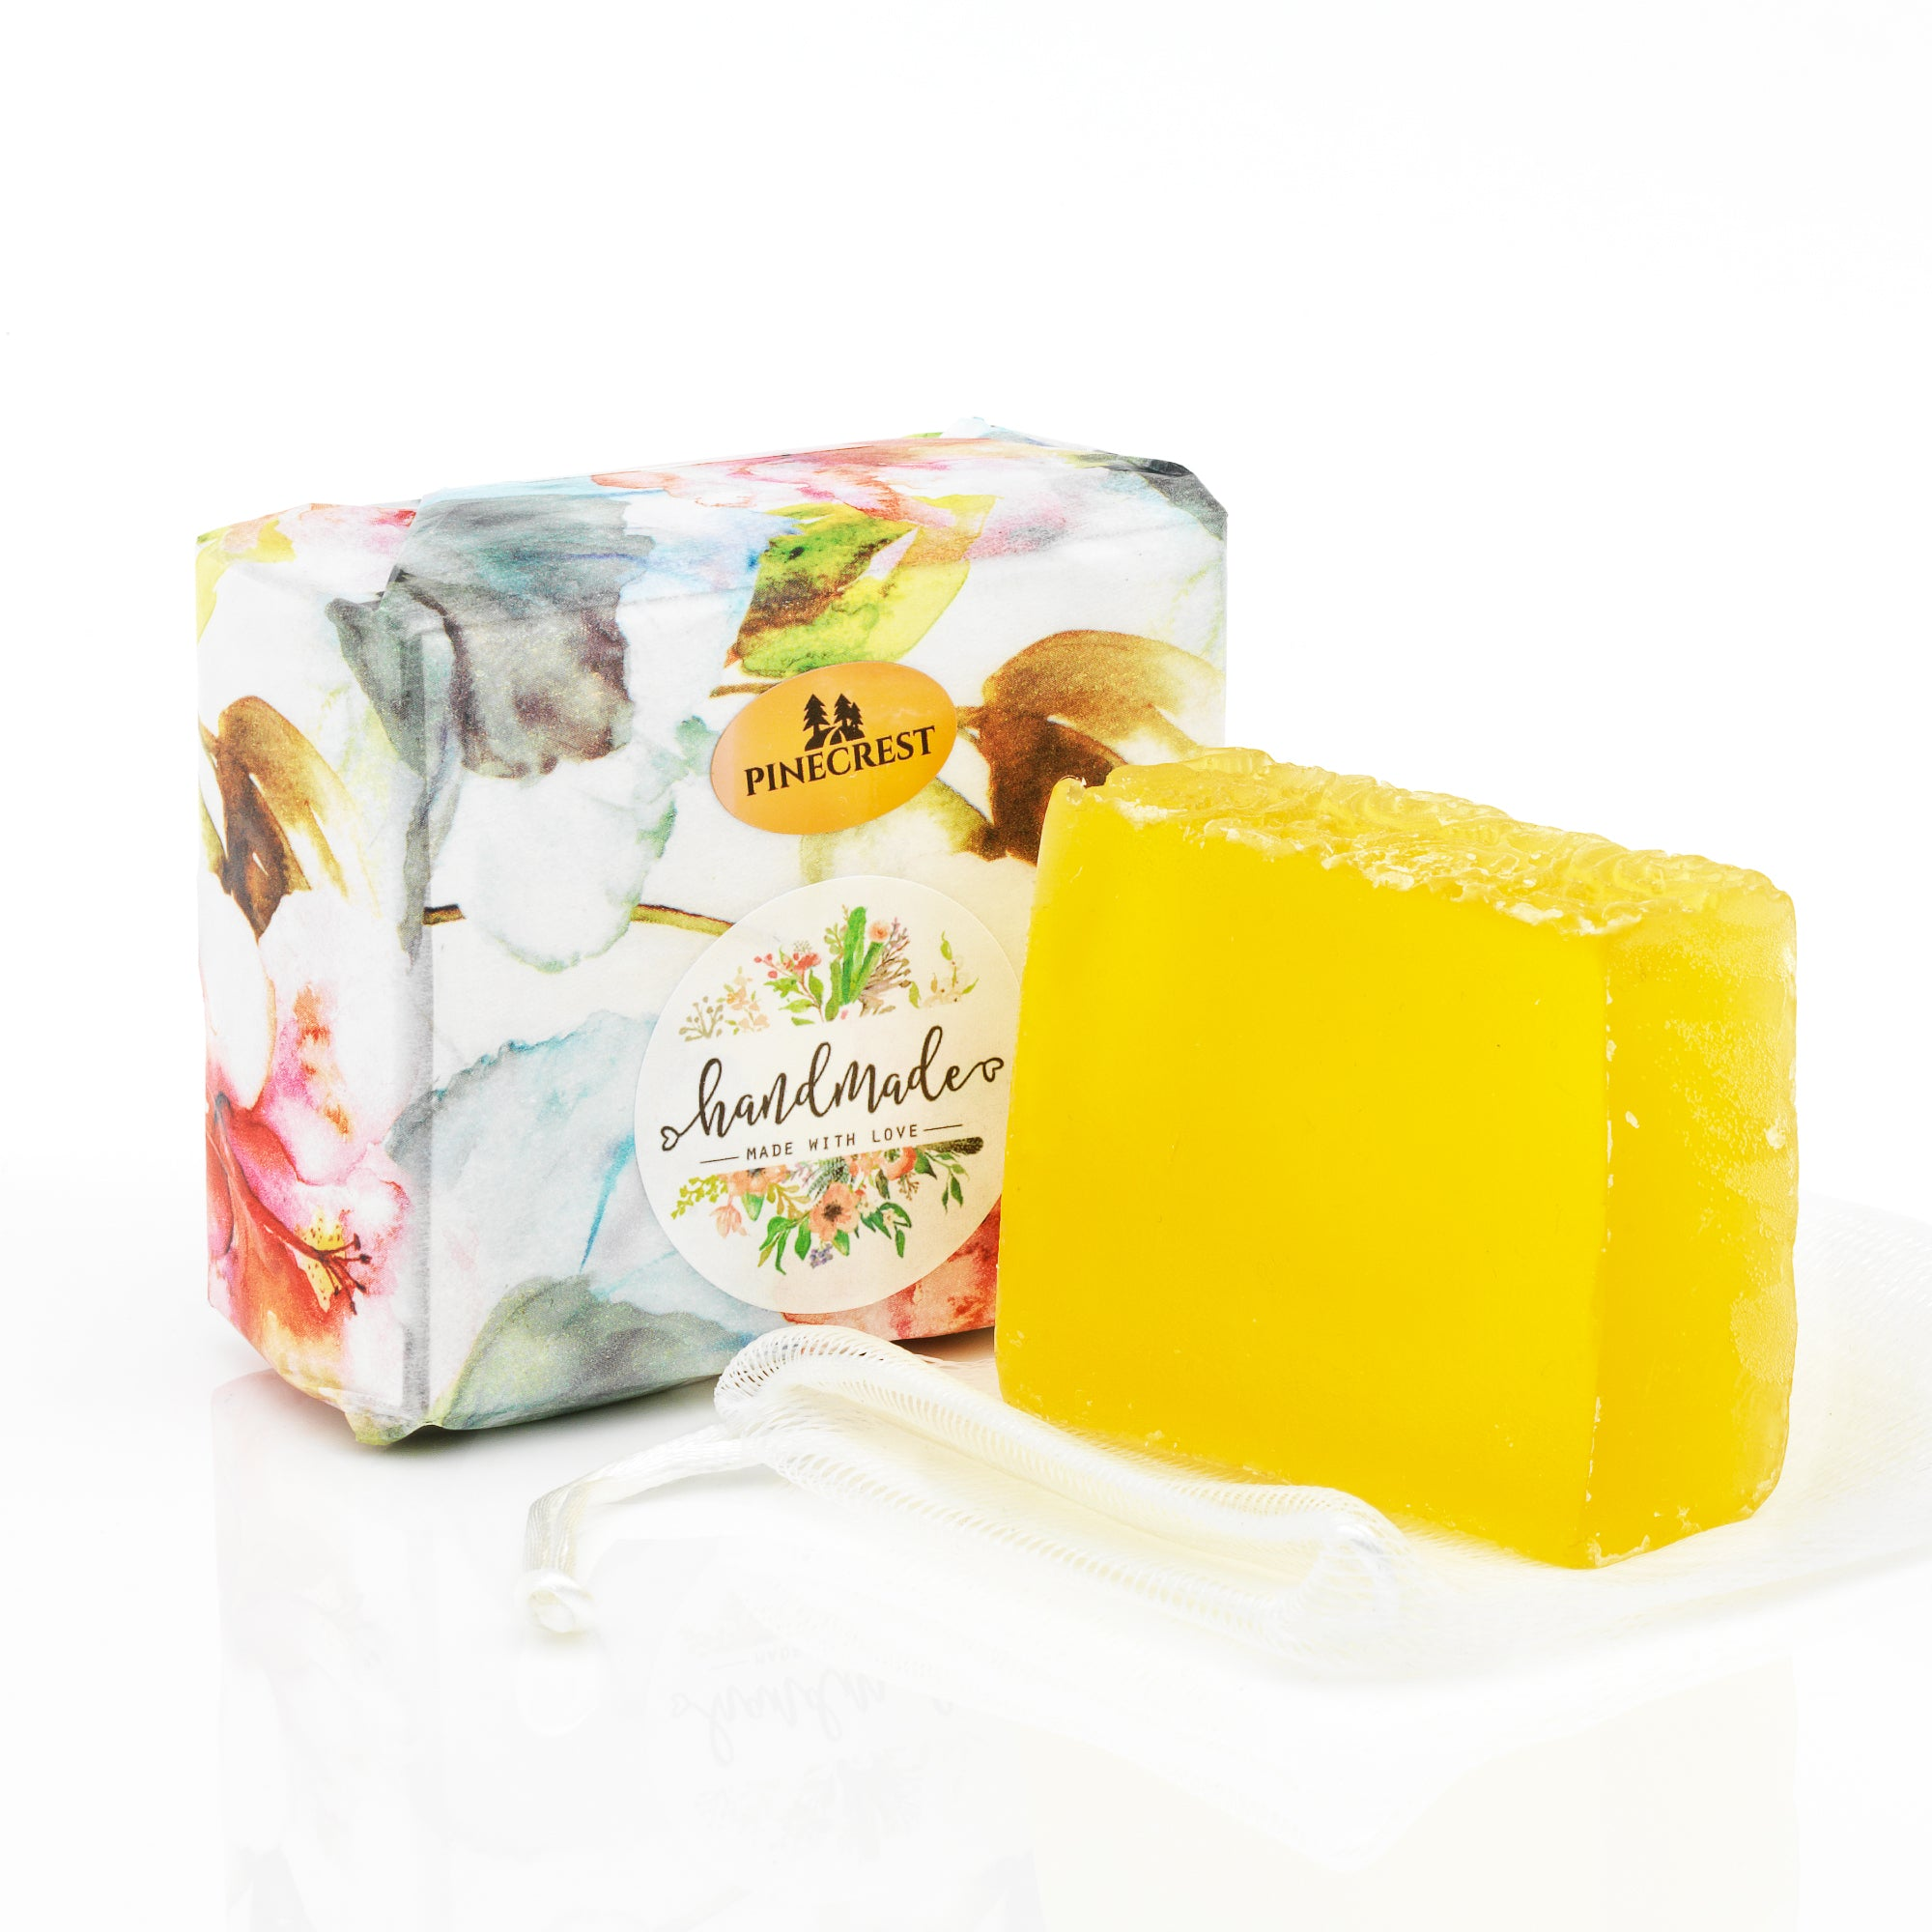 Cucumber and Aloe Vera Soap with Carrot Seed Oil, Patchouli, Tea Tree and Bergamot